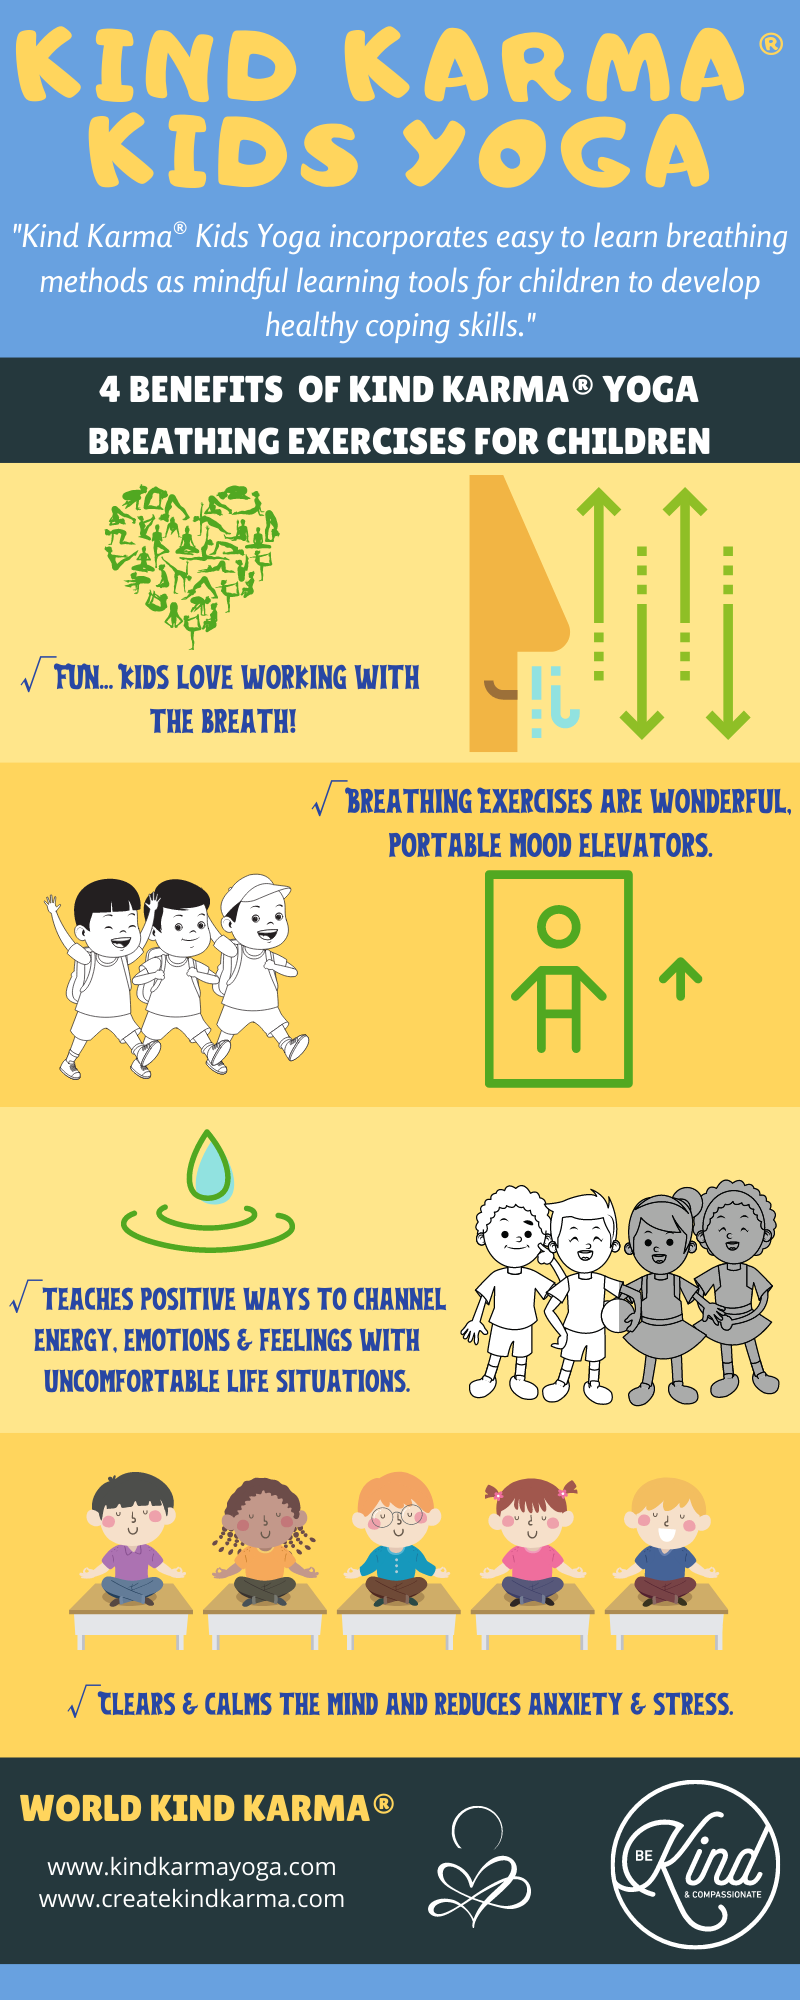 Kind Karma Kids Yoga Infographic of Benefits of Breathing Exercises